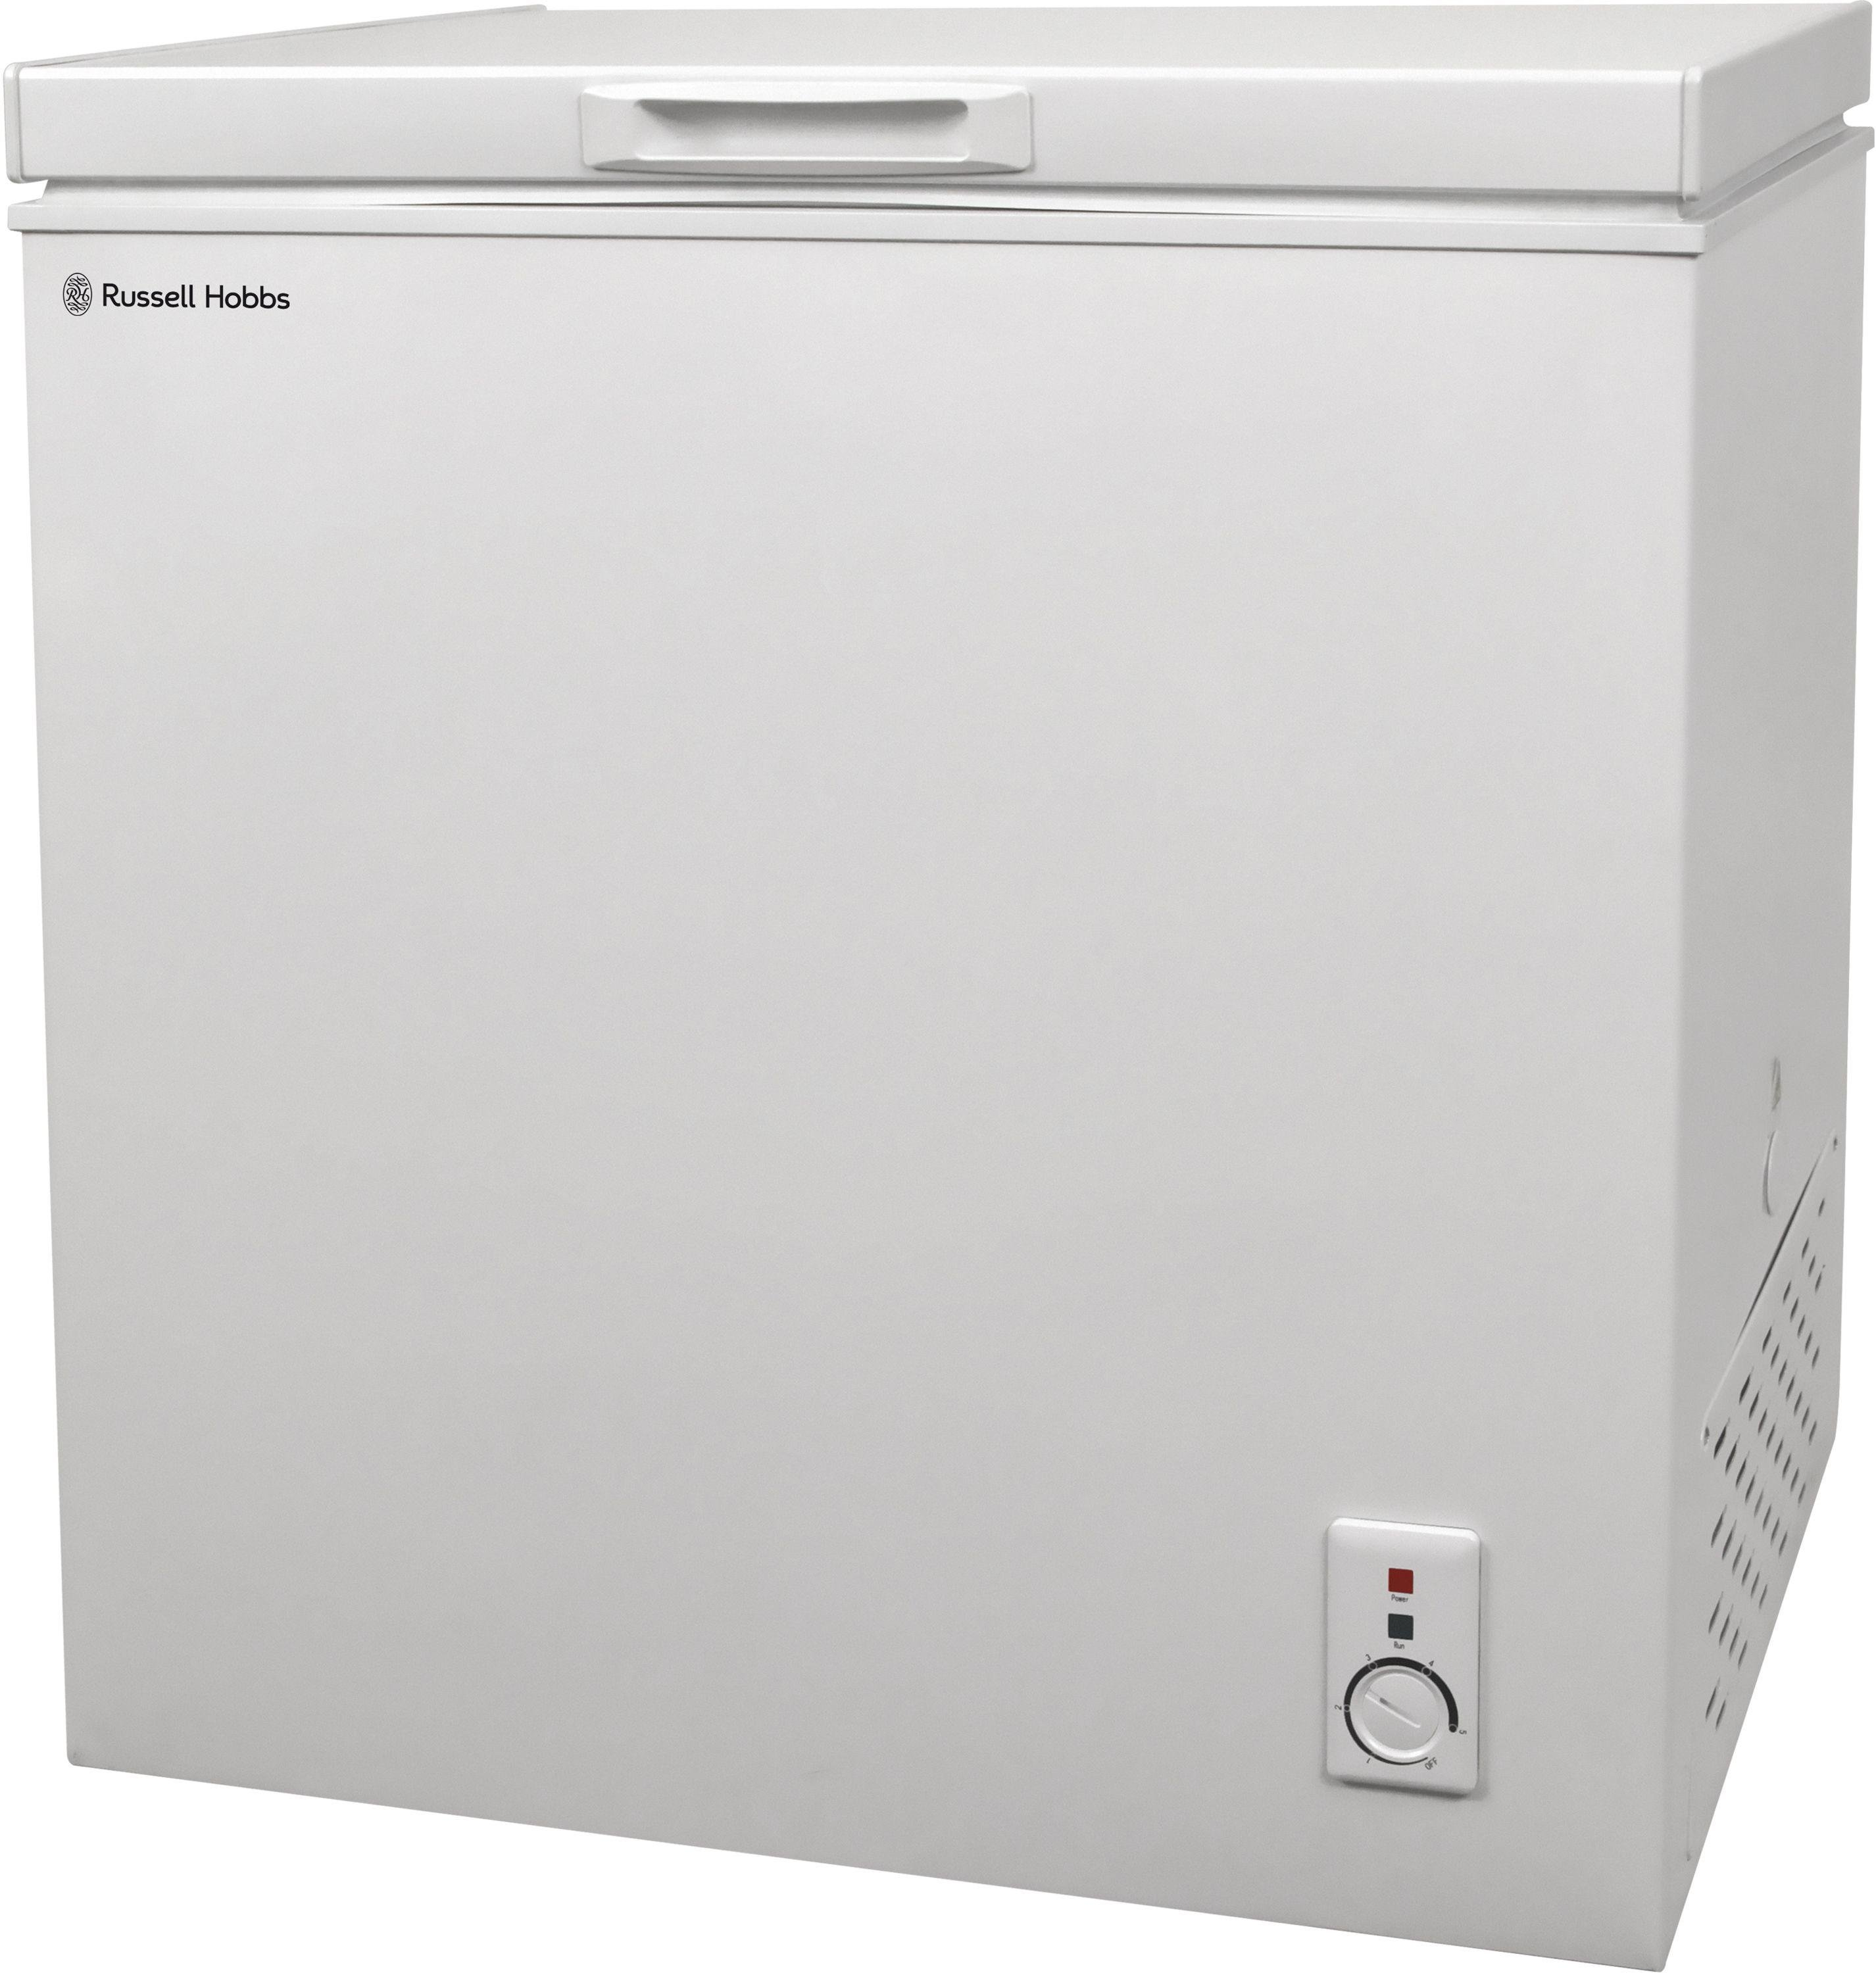 Russell Hobbs - RHCF150 - Chest - Freezer - White/Ins/Del/Rec